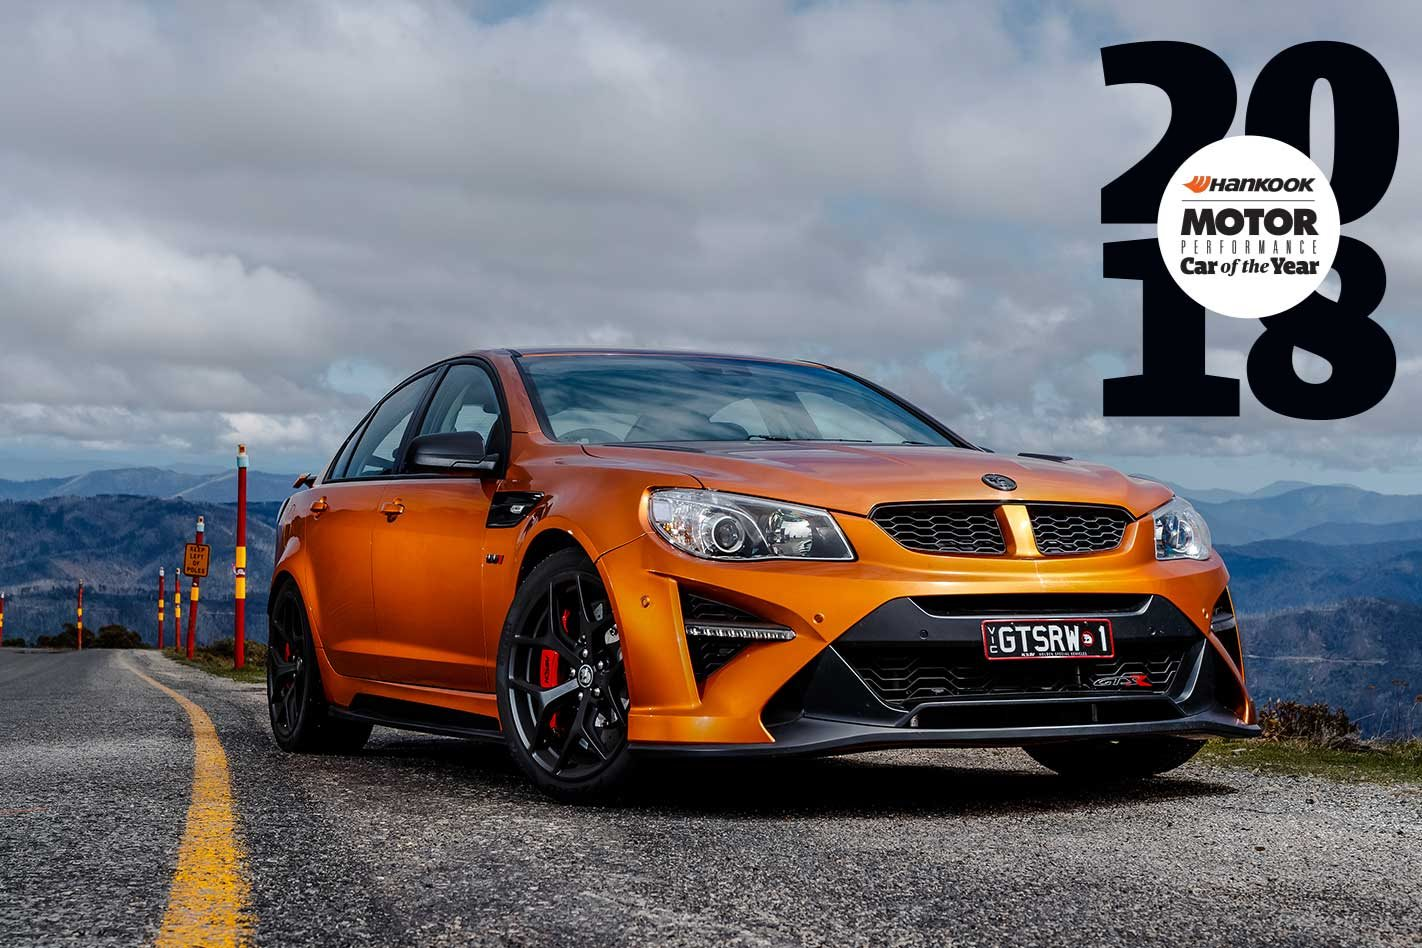 hsv gtsr w1 performance car of the year 2018 5th place. Black Bedroom Furniture Sets. Home Design Ideas